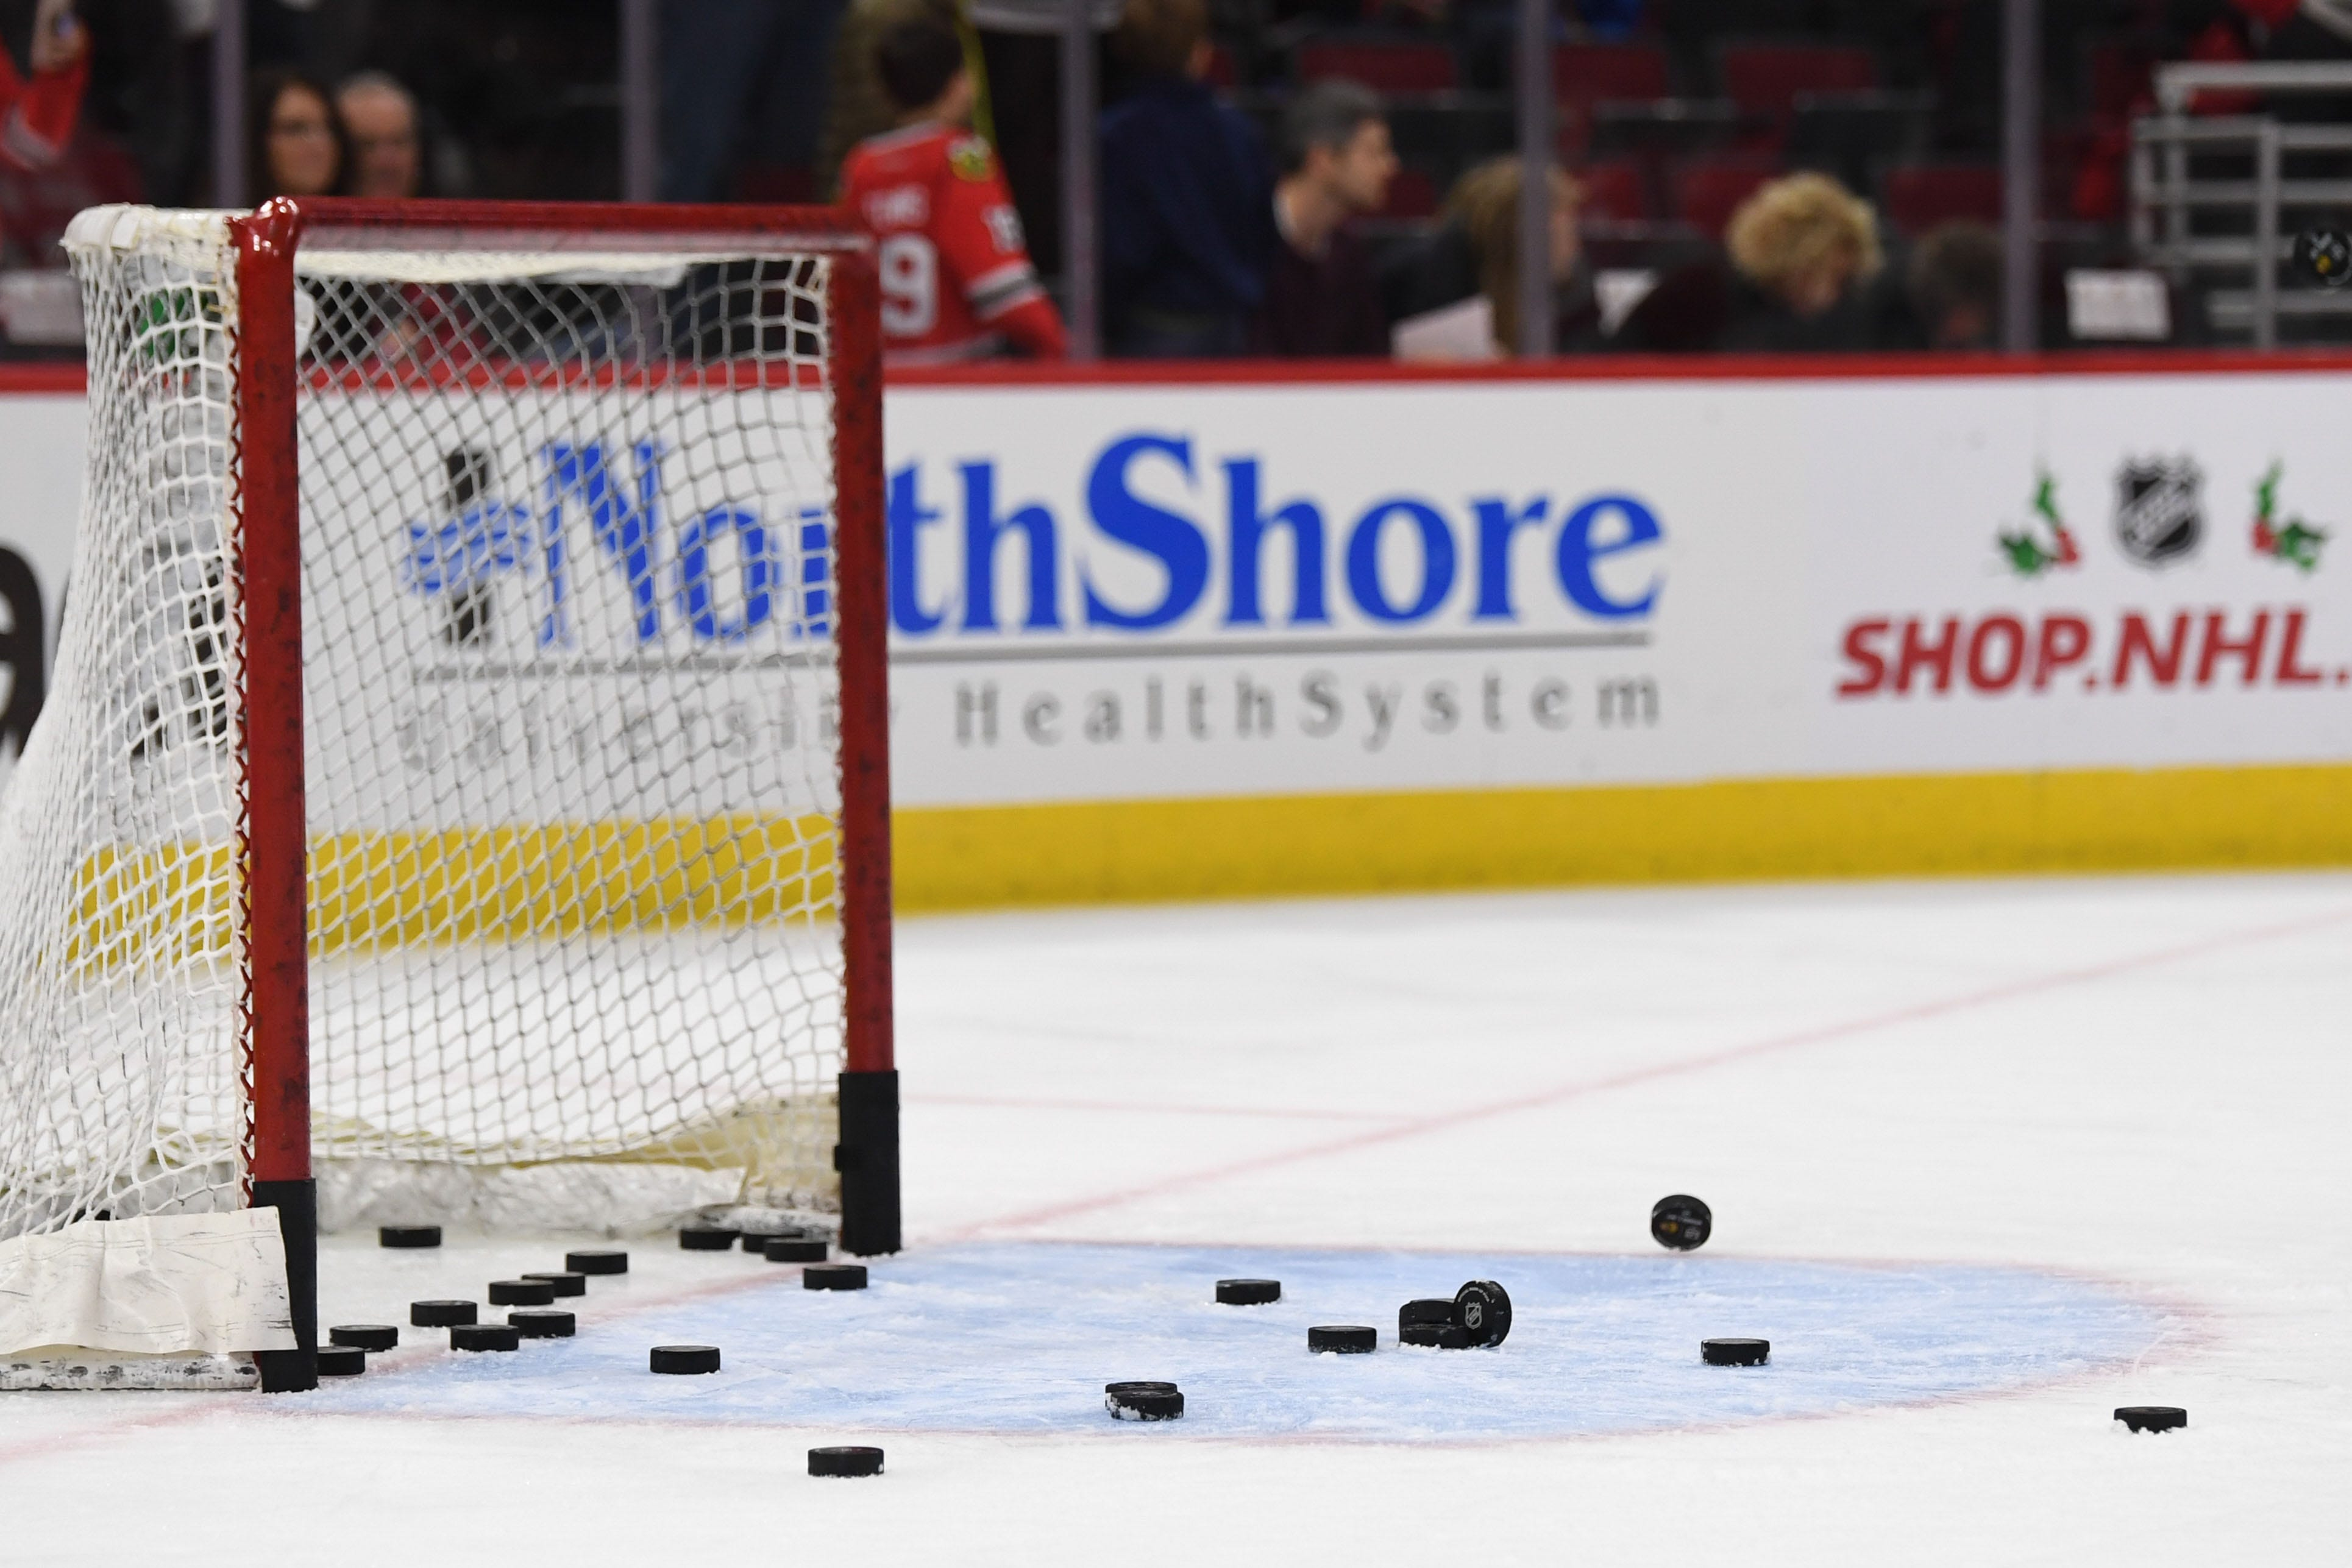 Hockey officials solve leak issue by putting bucket on ice during live game